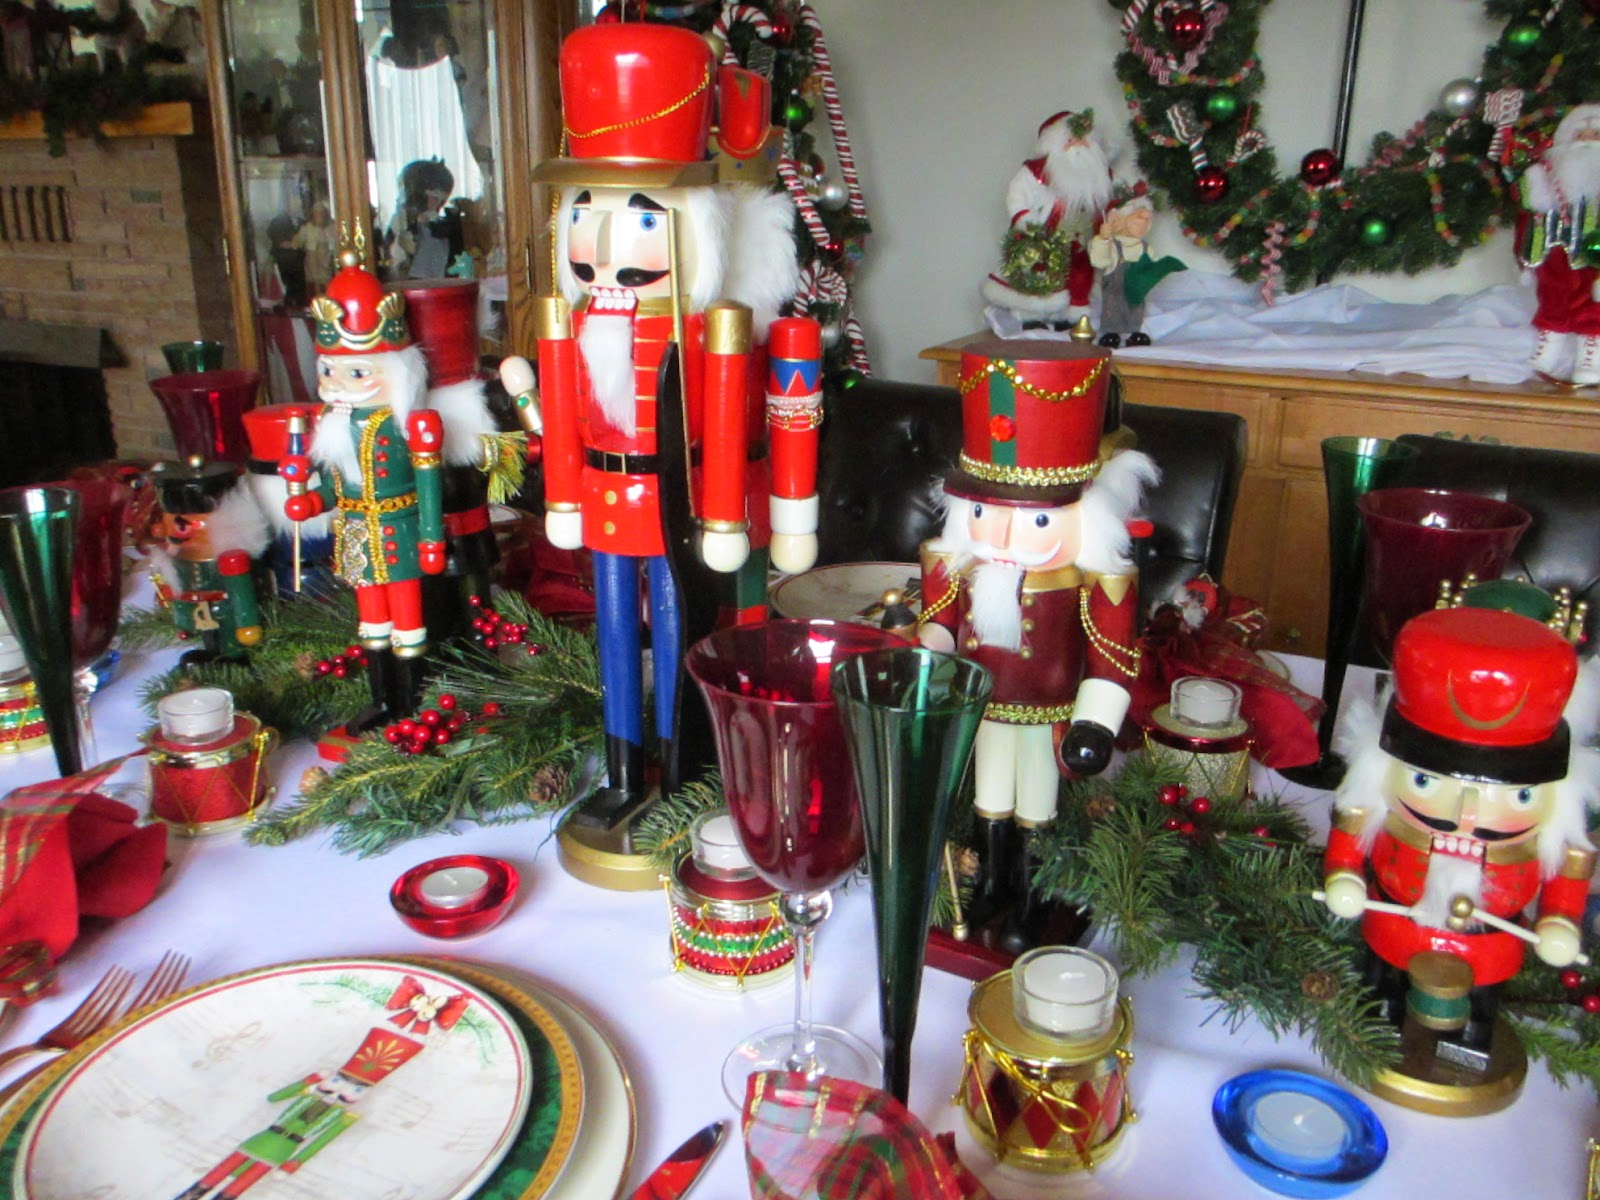 The Welcomed Guest Nutcracker Tablescape. Where To Buy Christmas Ornaments At Disney World. Christmas Party Decorations Homemade. Wholesale Christmas Decorations In Houston. Inexpensive Christmas Lawn Decorations. Decorating Christmas Tree With Feathers. Christmas Decorations From The Usa. Christmas Decorations Handmade. What Are Christmas Tree Ornaments Made Of